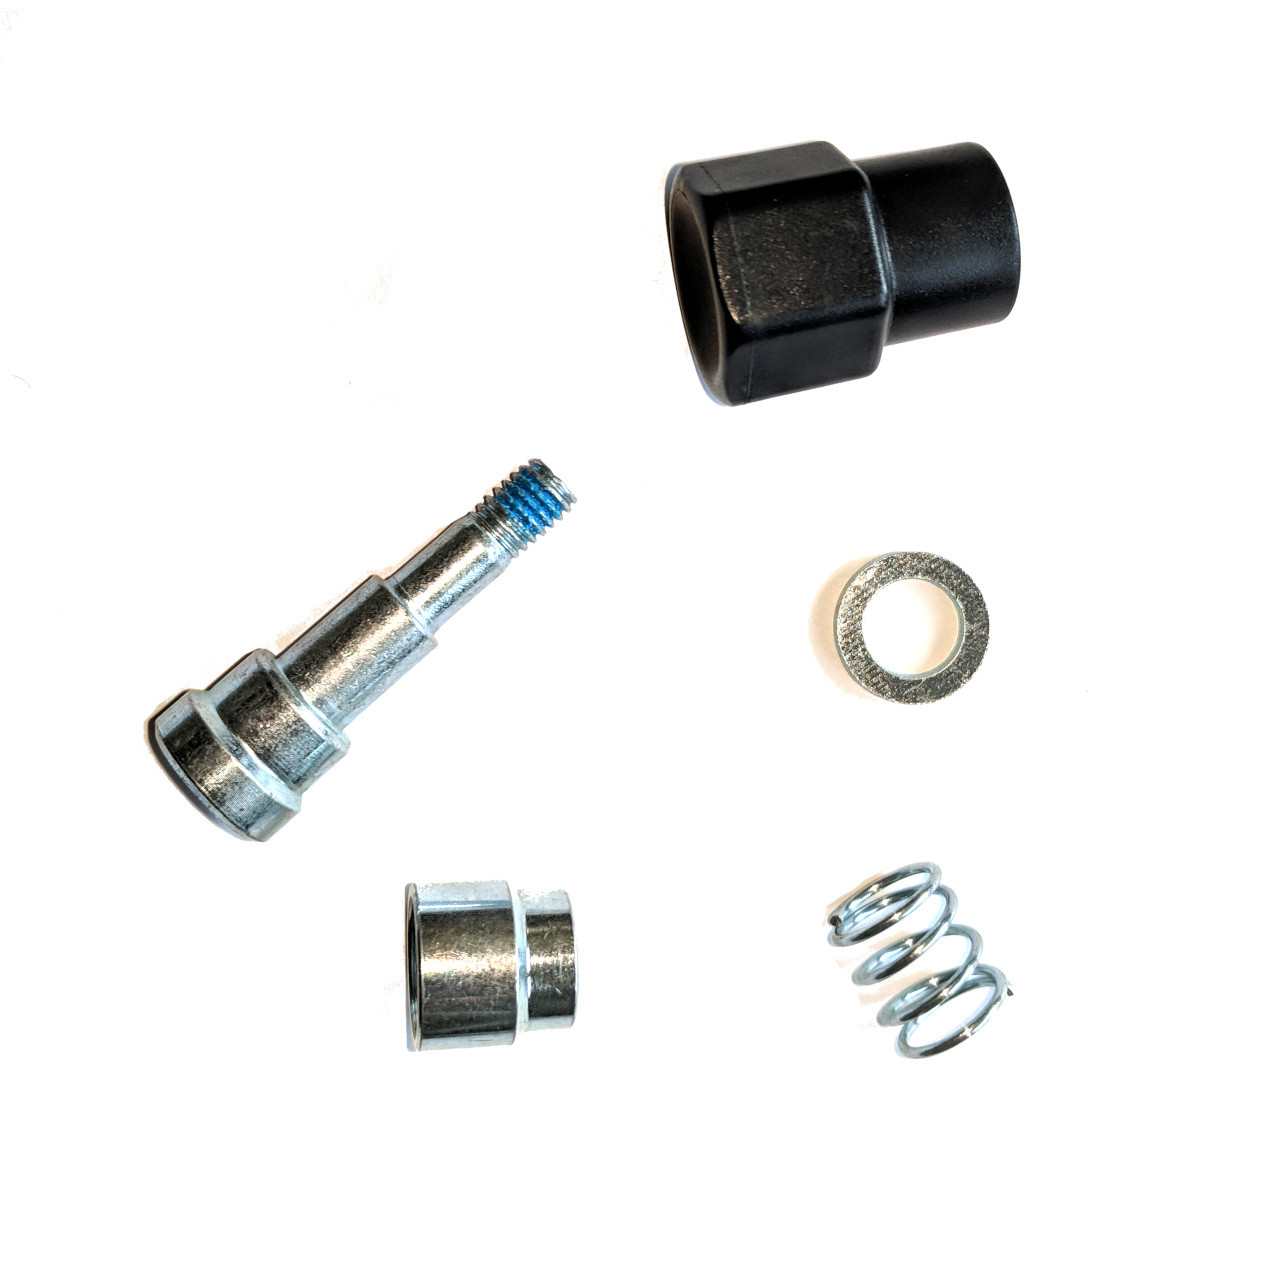 BOB Stroller Shock Release Pin Assembly Kit